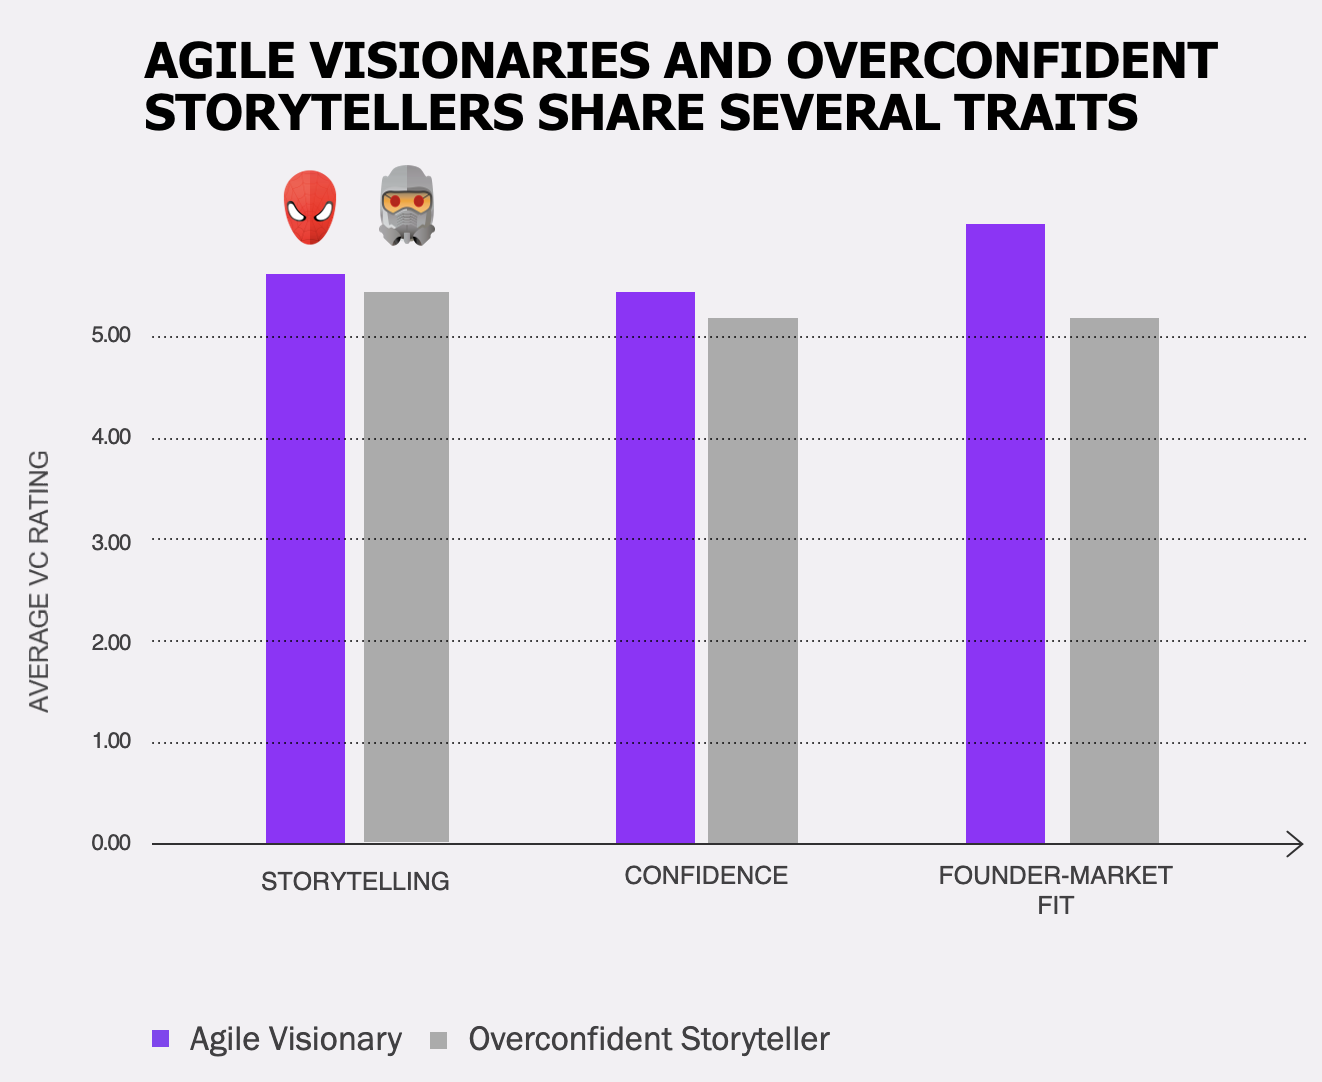 Agile Visionaries And Overconfident Storytellers Share Several Traits